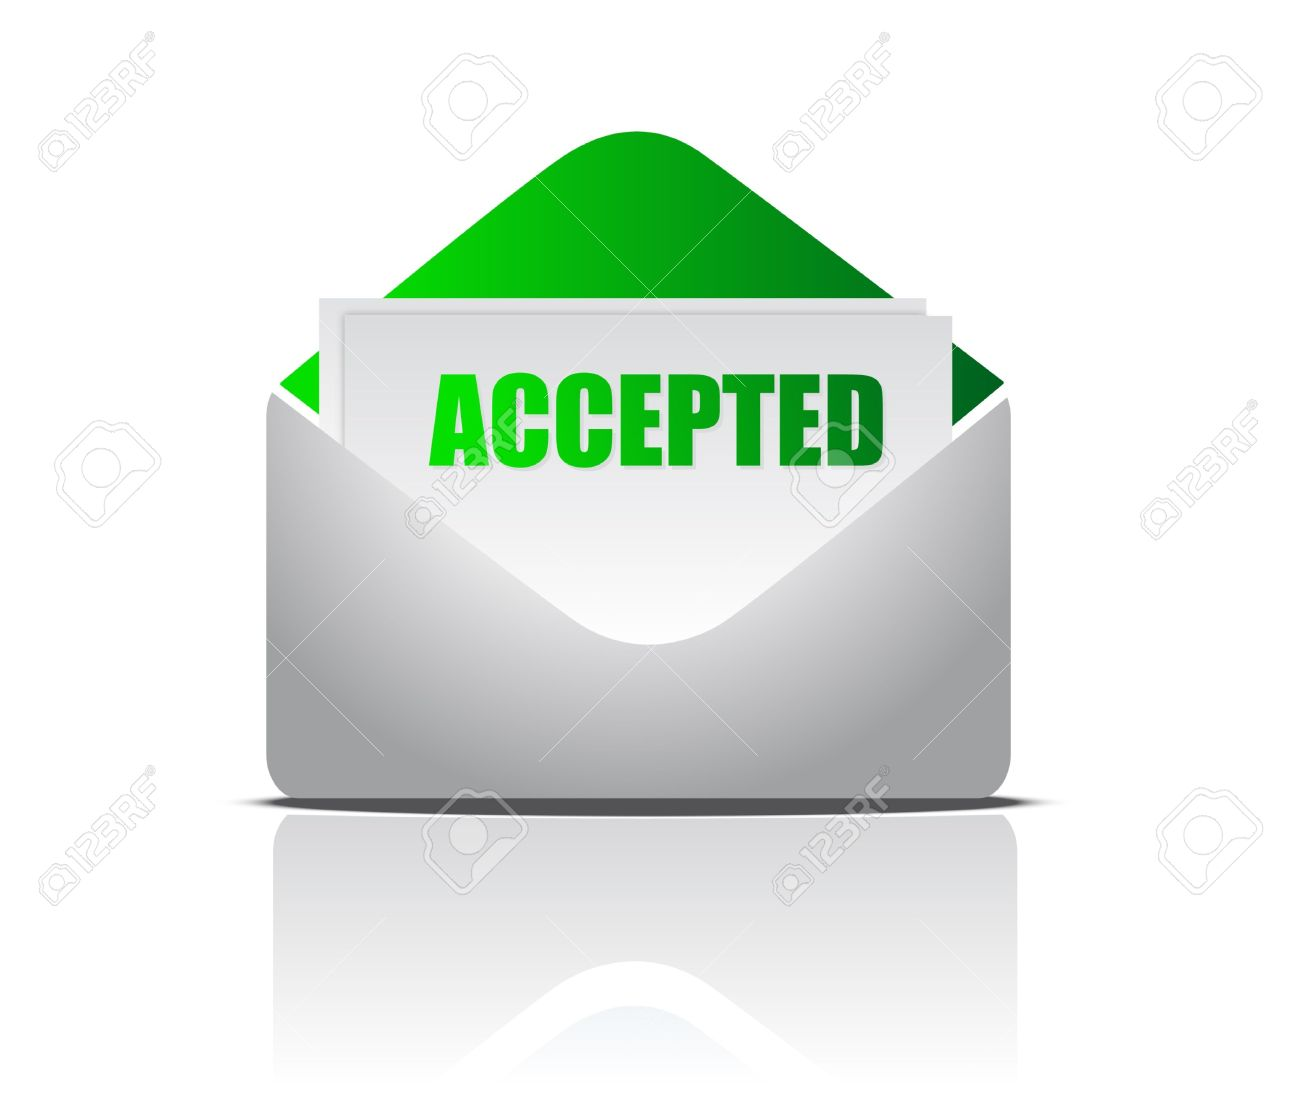 Accepted clipart.